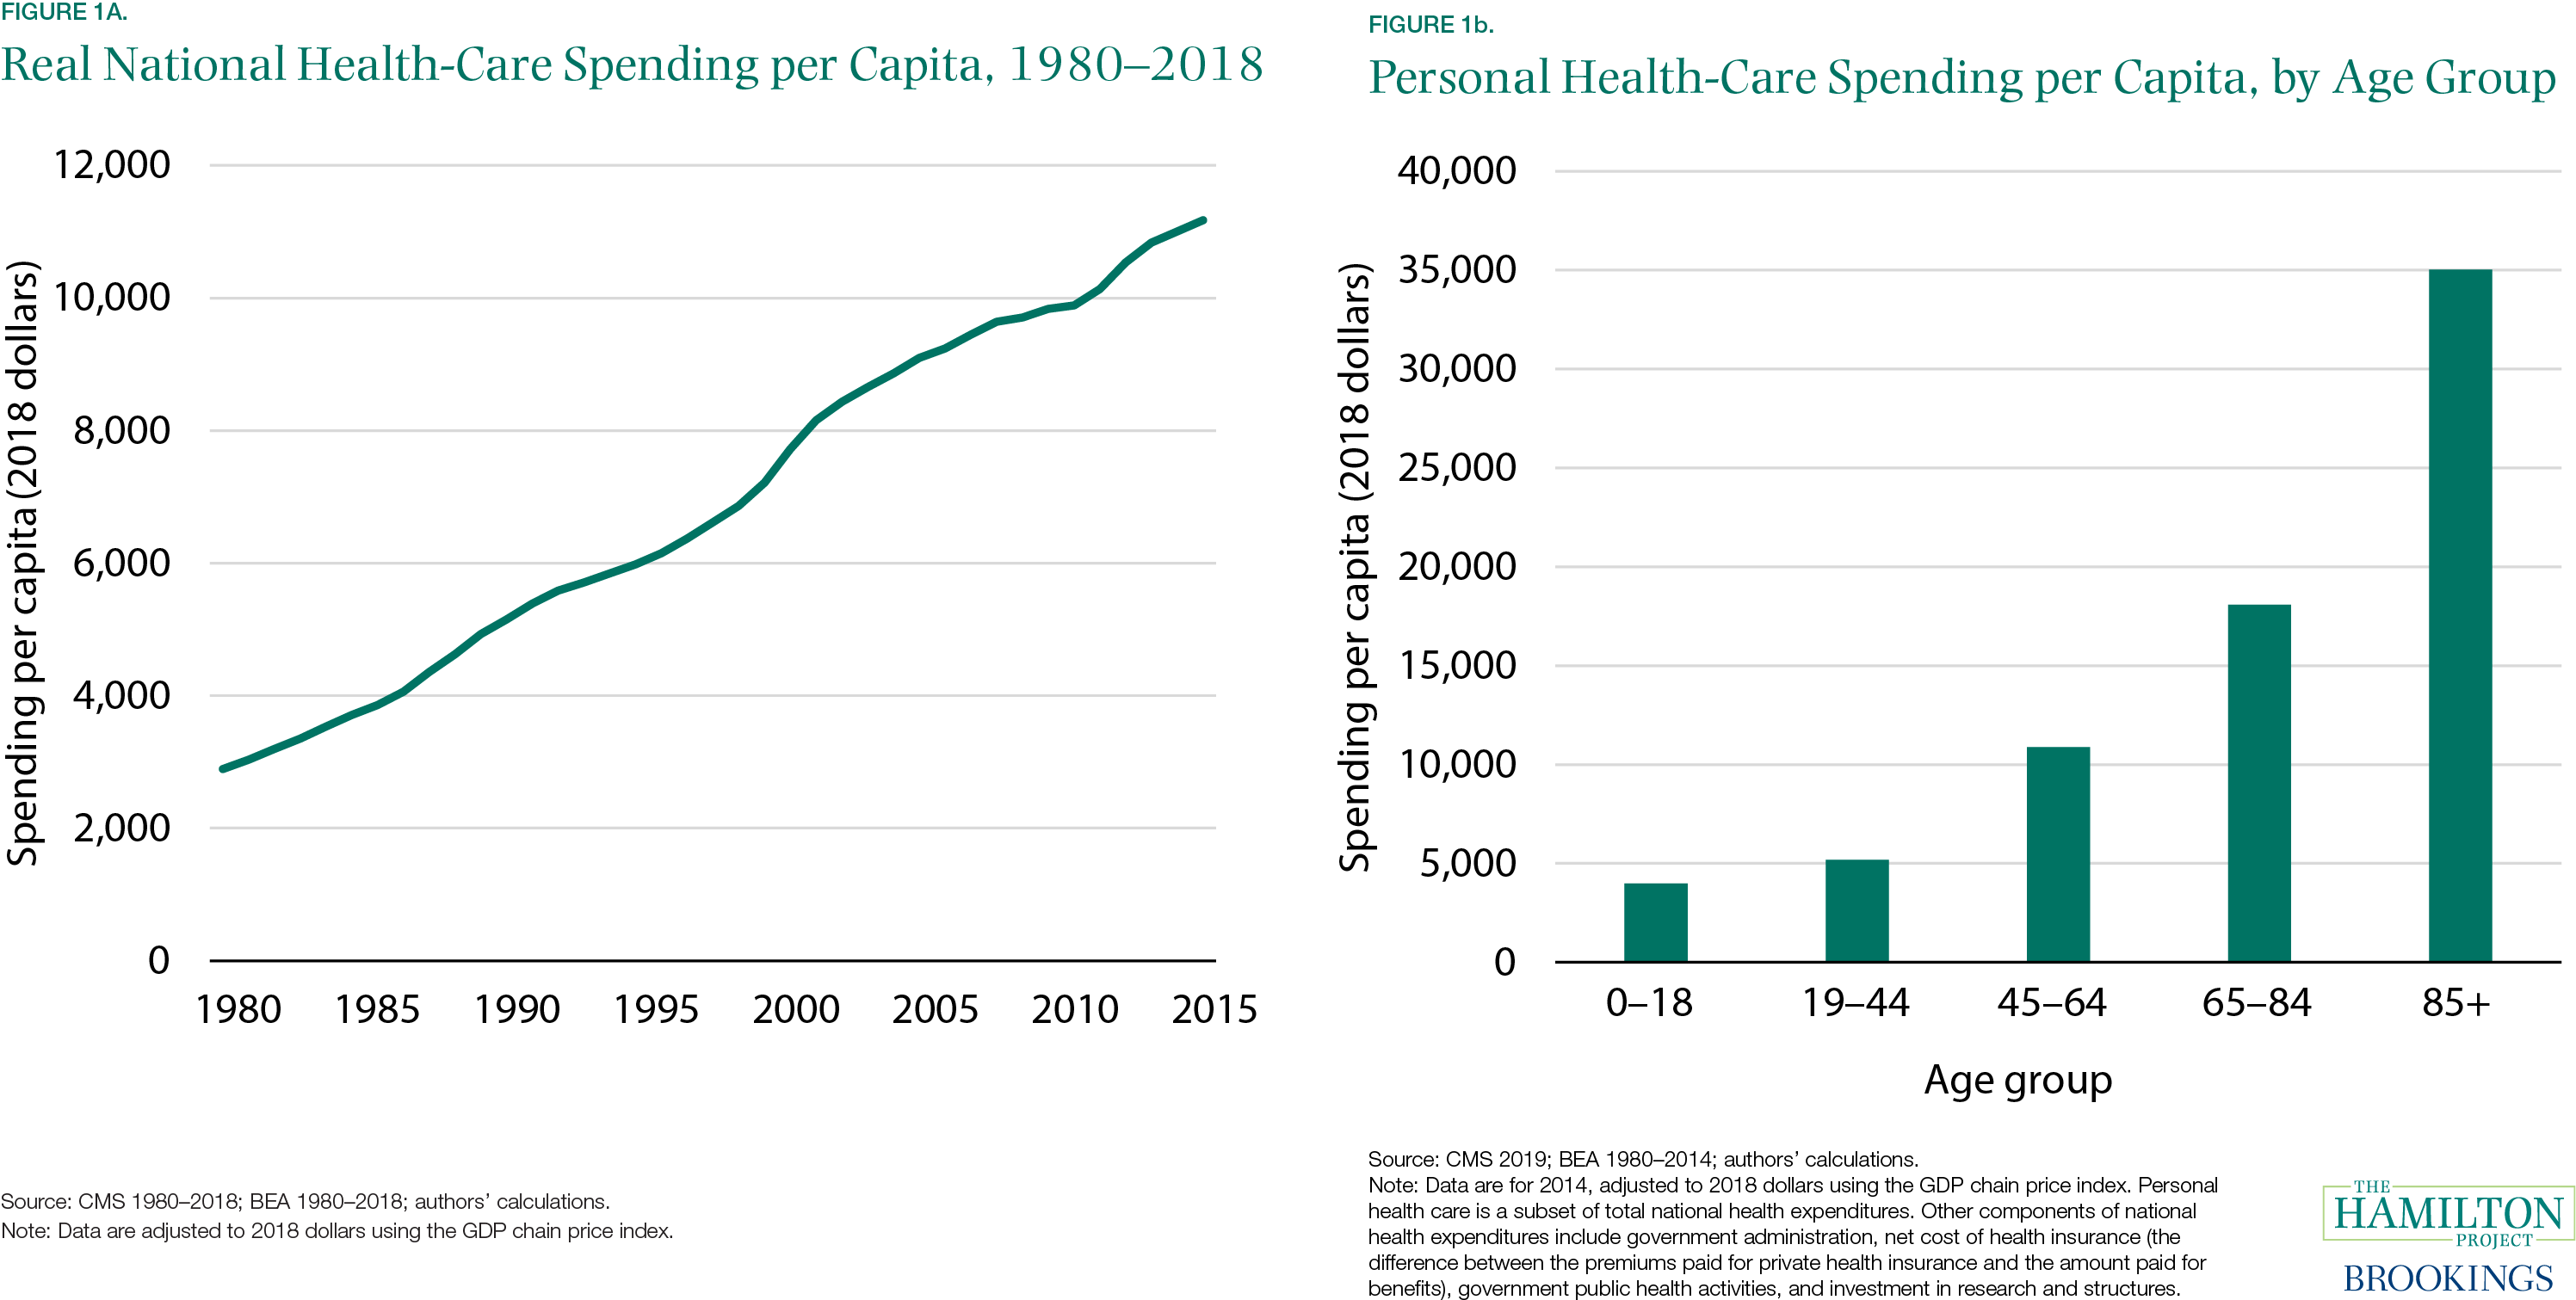 Figure 1A. Real National Health-Care Spending per Capita, 1980-2018; Figure 1B. Personal Health-Care Spending per Capita, by Age Group